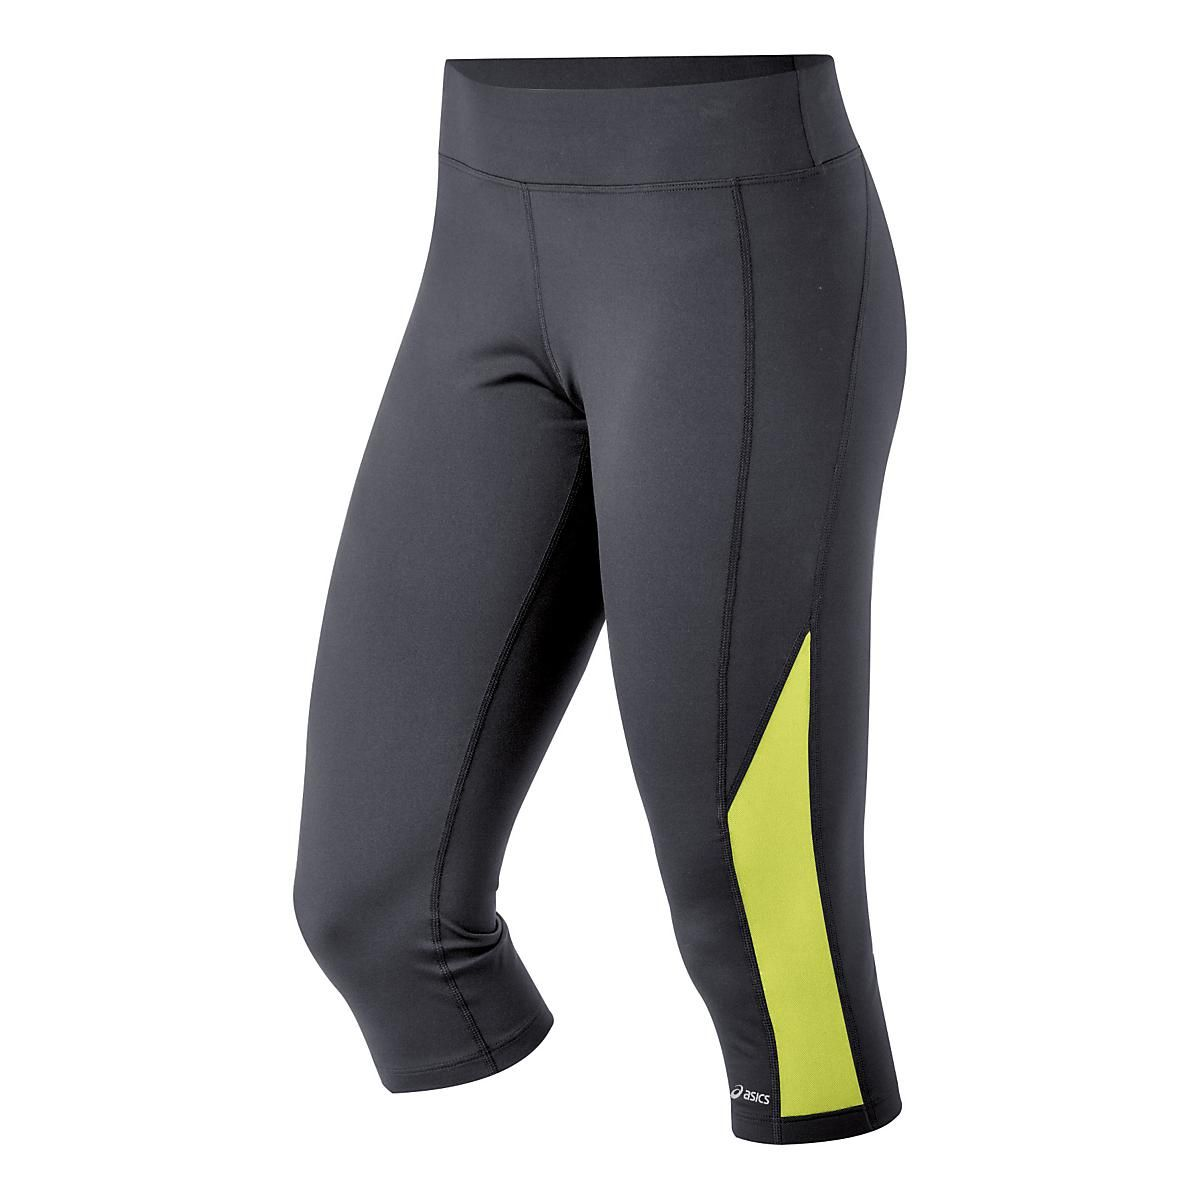 Sleek, sexy, and savvy: our ASICS PR Capri running pants offer a flattering, form-fitting fit; clean color options that are easy to love; and premium performance features like breathable Power Mesh inserts and a zipped stash pocket to take your valuables on the go while you run your booty off